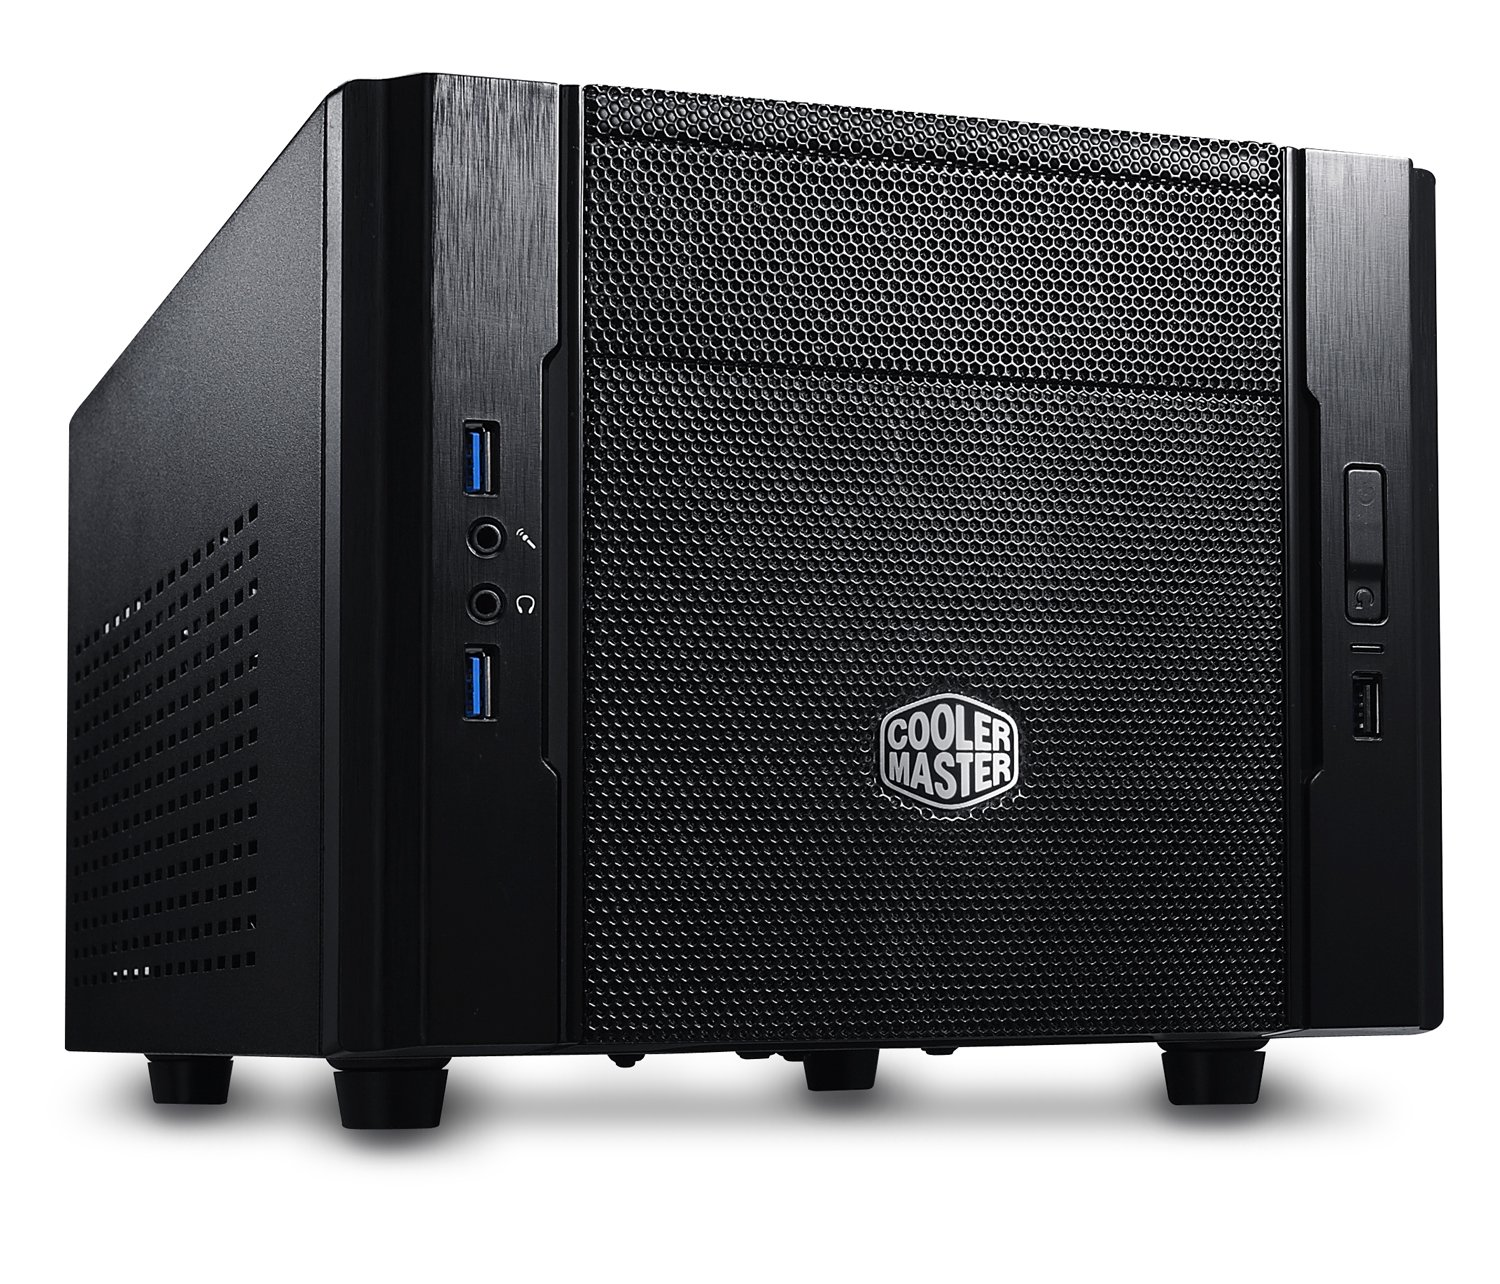 Cooler Master Elite 130 - Mini-ITX Computer Case with Mesh Front Panel and Water Cooling Support